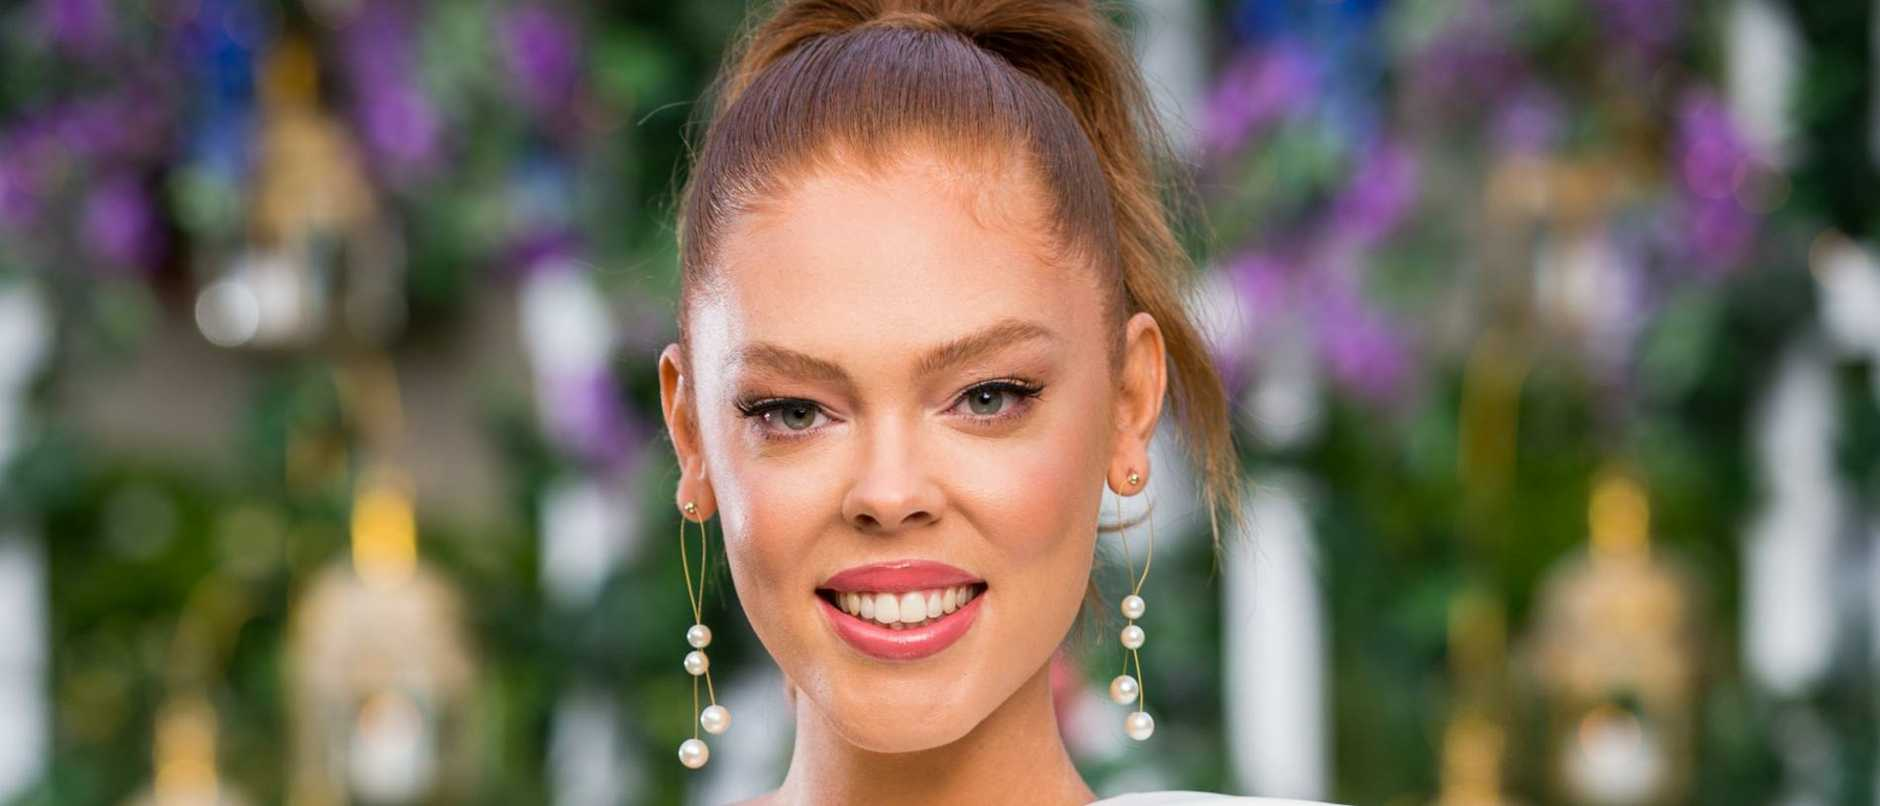 She confused viewers with a bizarre rant about being a redhead on The Bachelor, and now Brisbane's Zoe-Clare McDonald has cleared up what led to the meltdown.